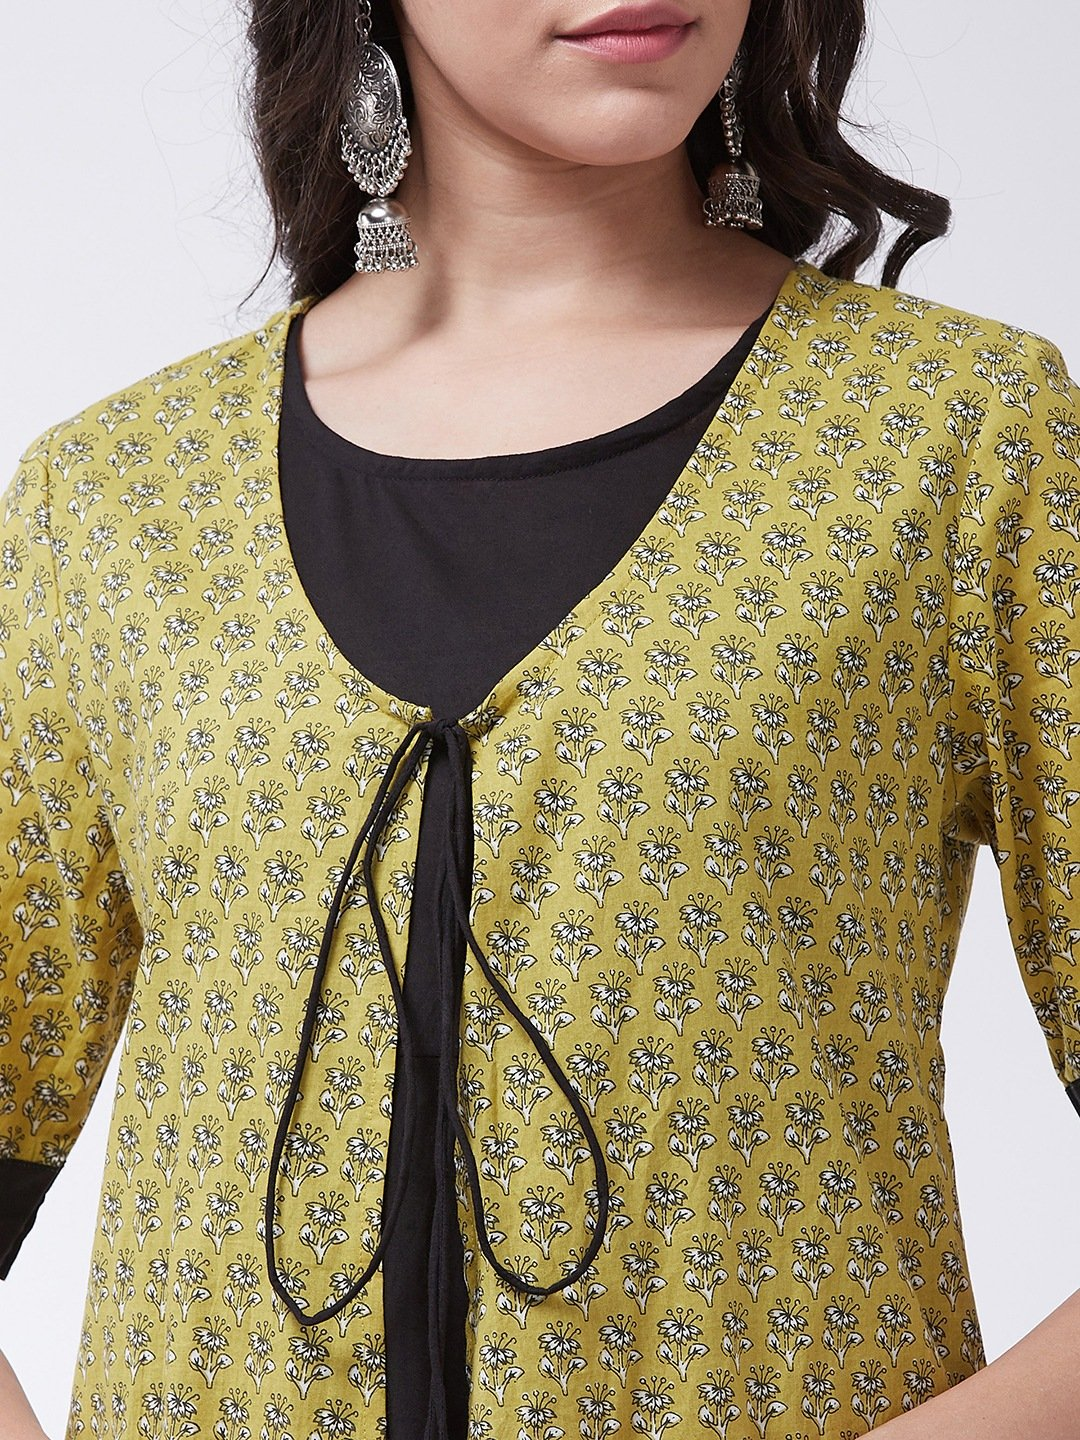 Black Anarkali Dress With Yellow Floral Print Jacket